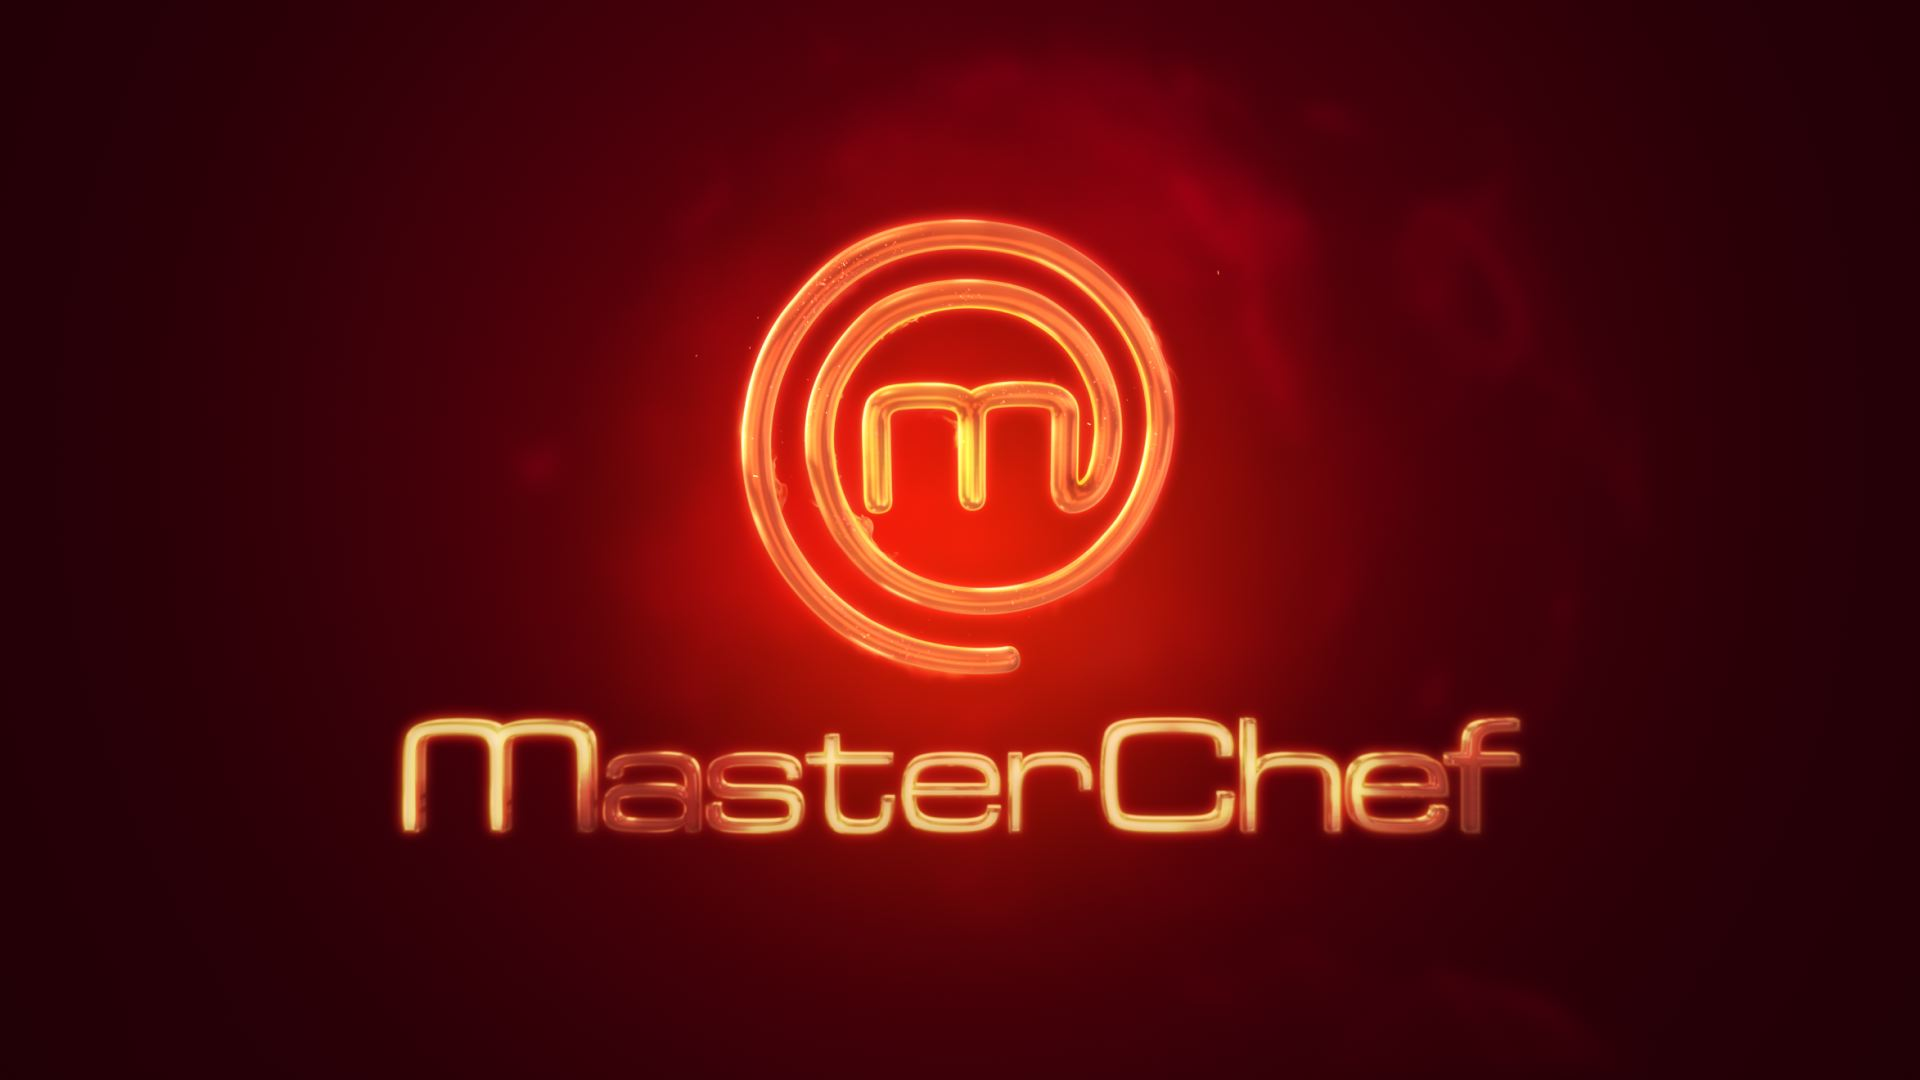 Chec de masterchef vers une indigestion d missions for Article culinaire